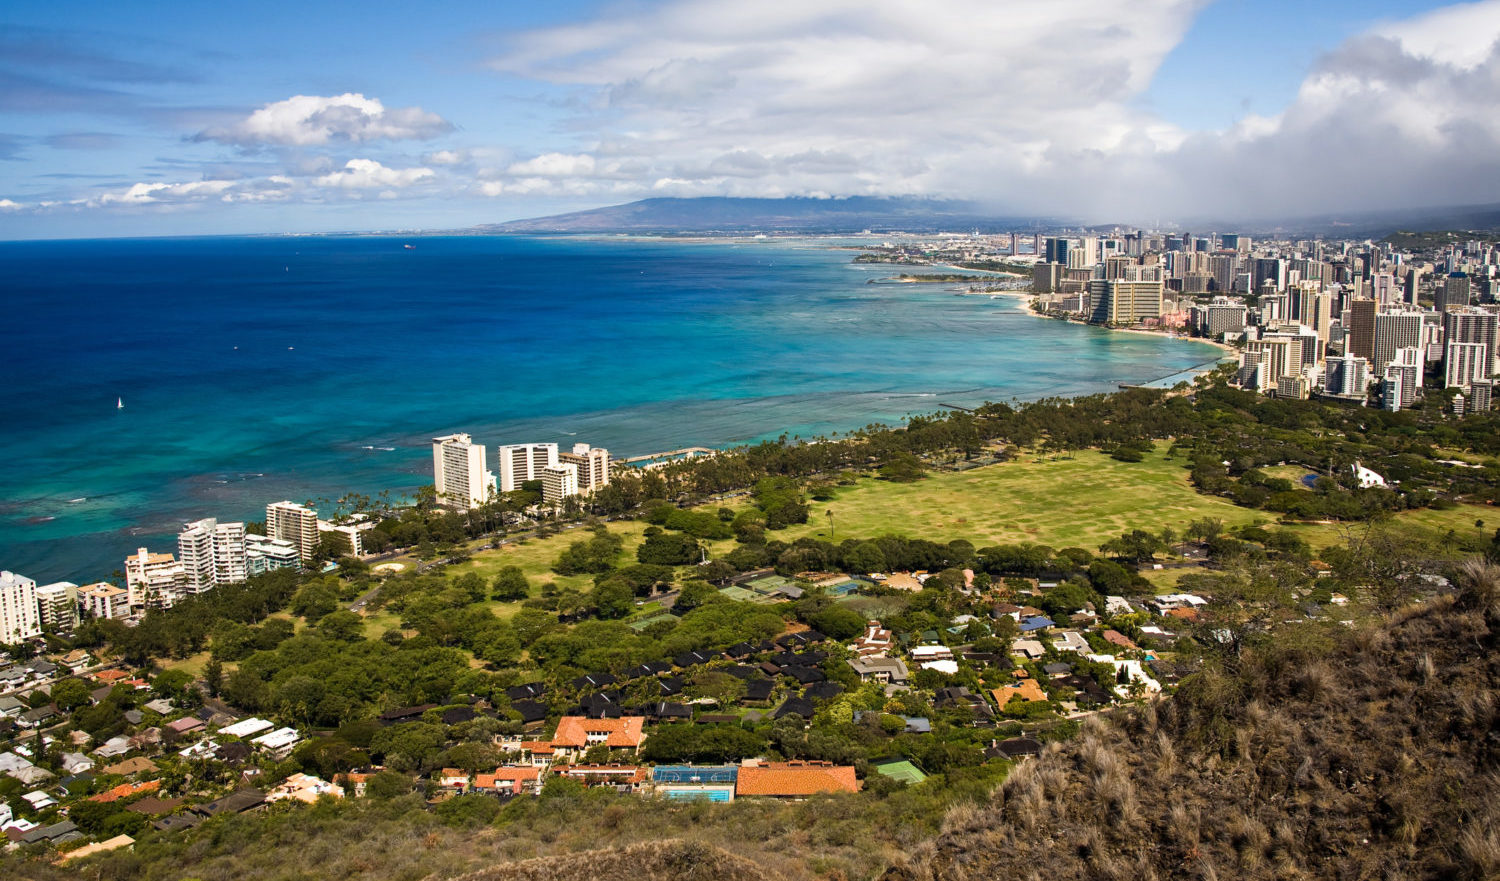 Honolulu and Waikiki Beach from above